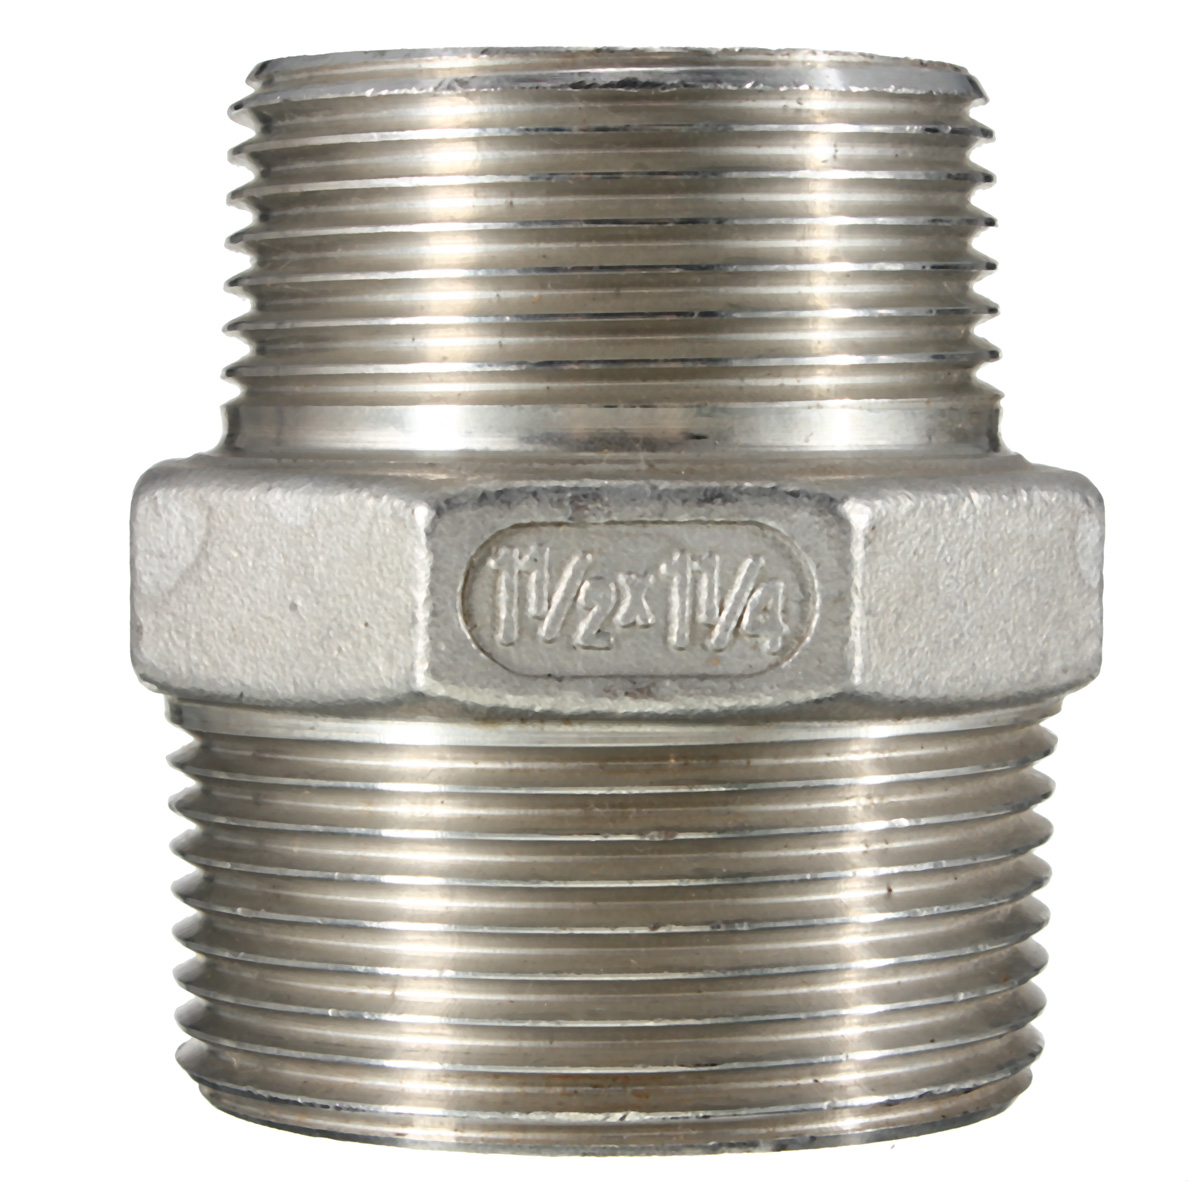 NPT Male x Male Hex Nipple Threaded Reducer Pipe Fitting 304 Stainless Steel